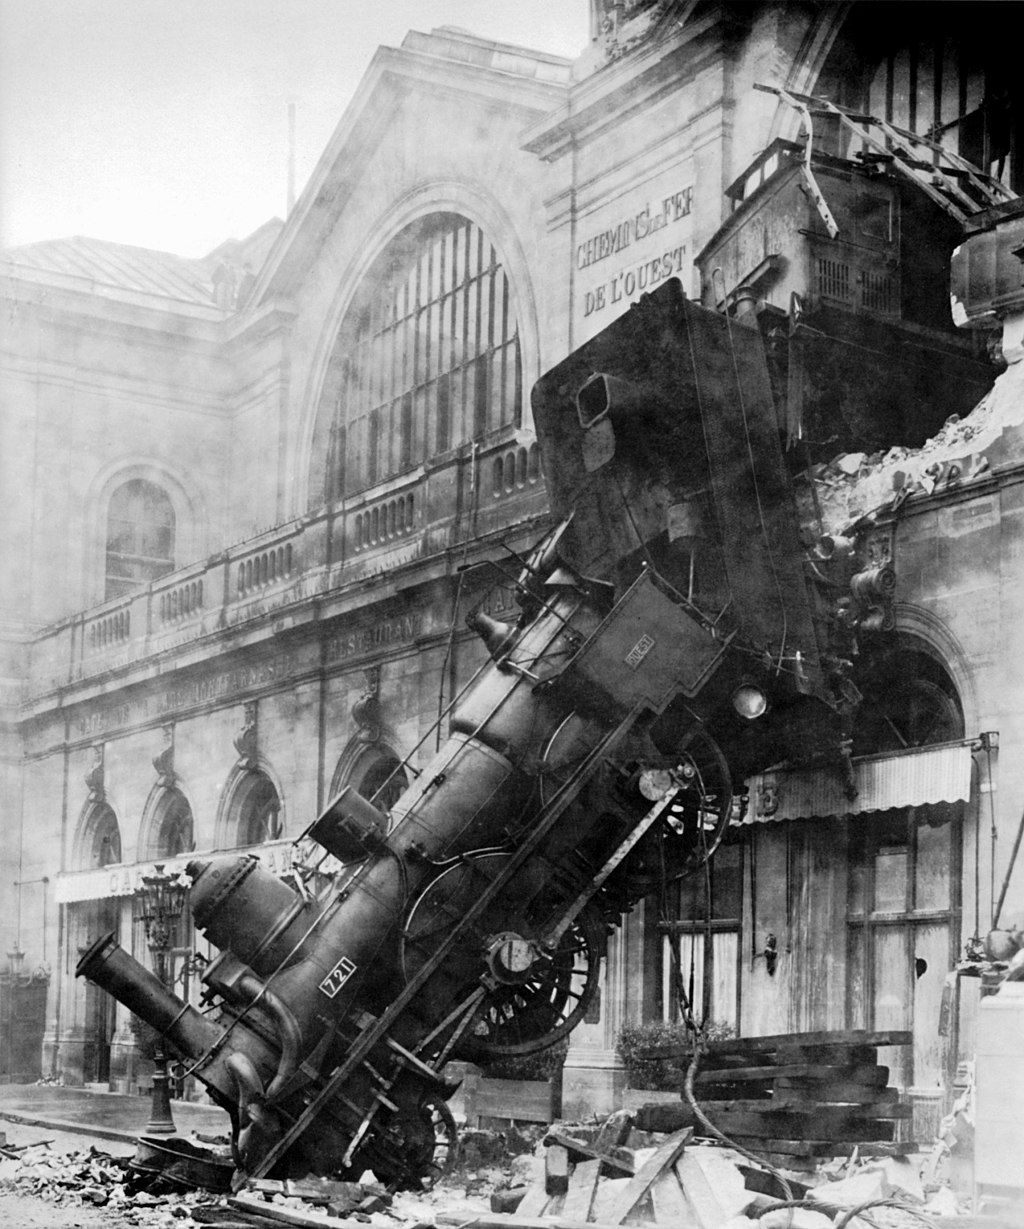 1895 train wreck at Gare Montparnasse [source: Wikipedia]